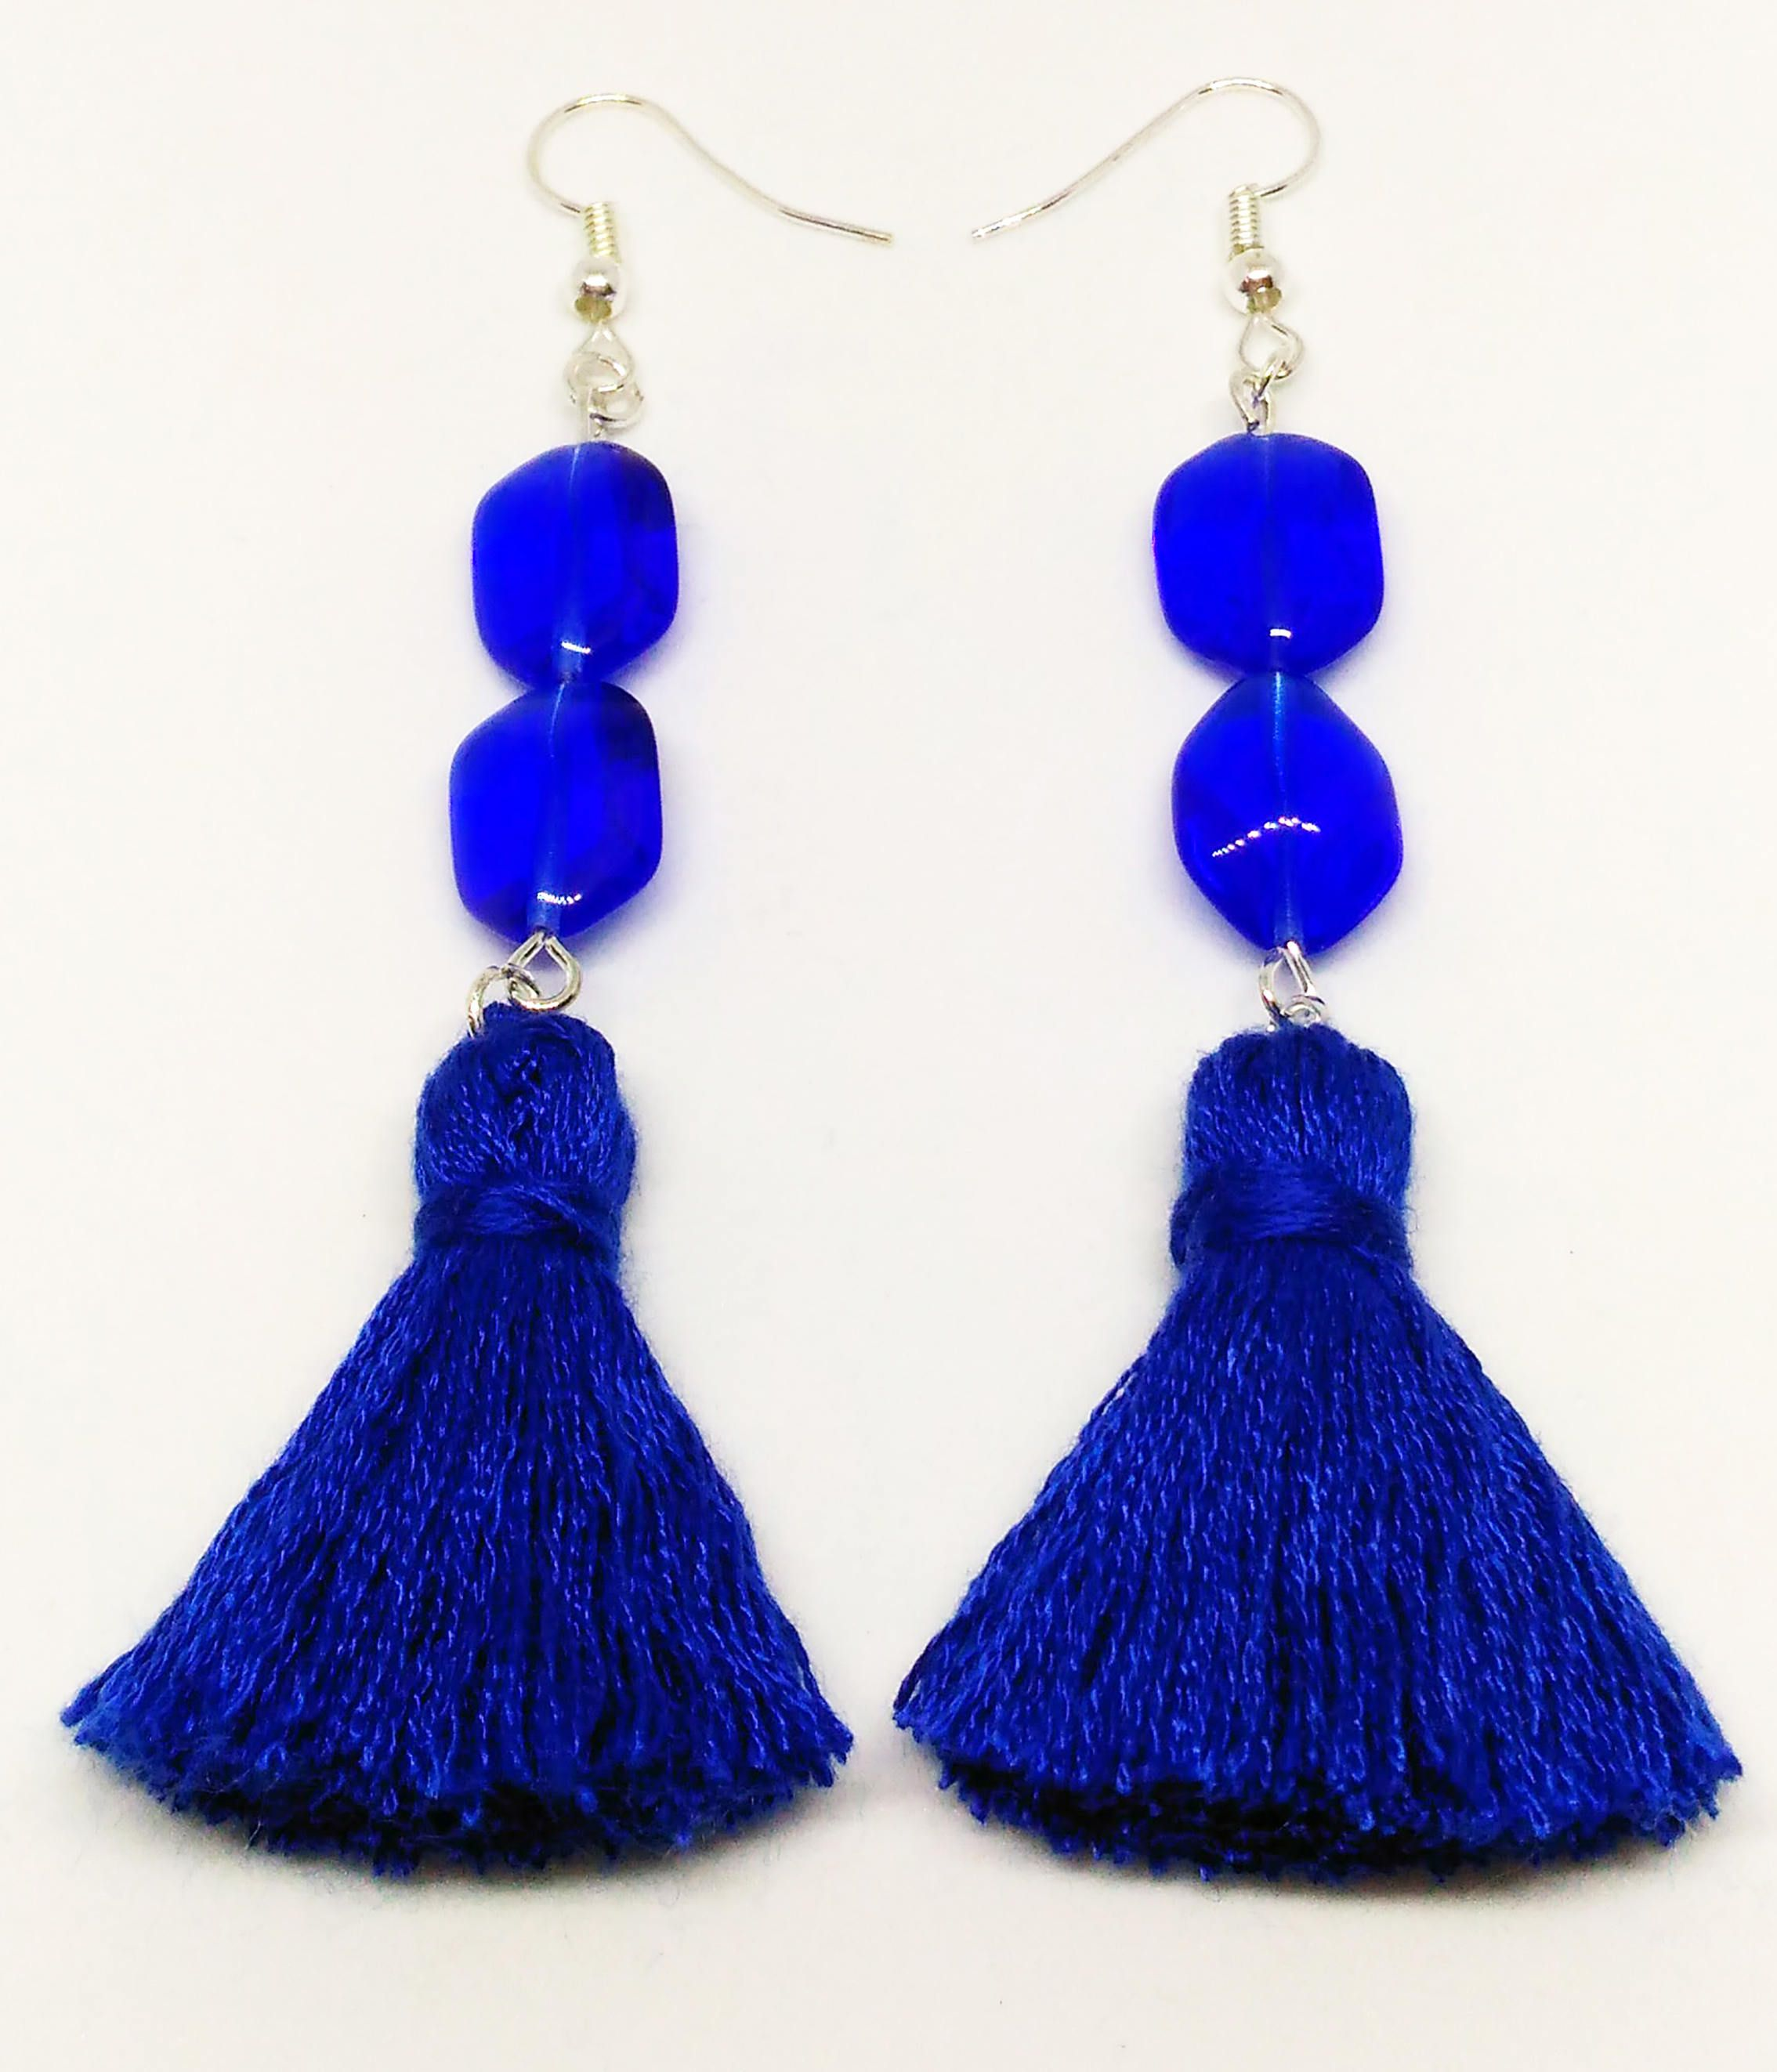 fringe earrings image carter hudson bead products seed